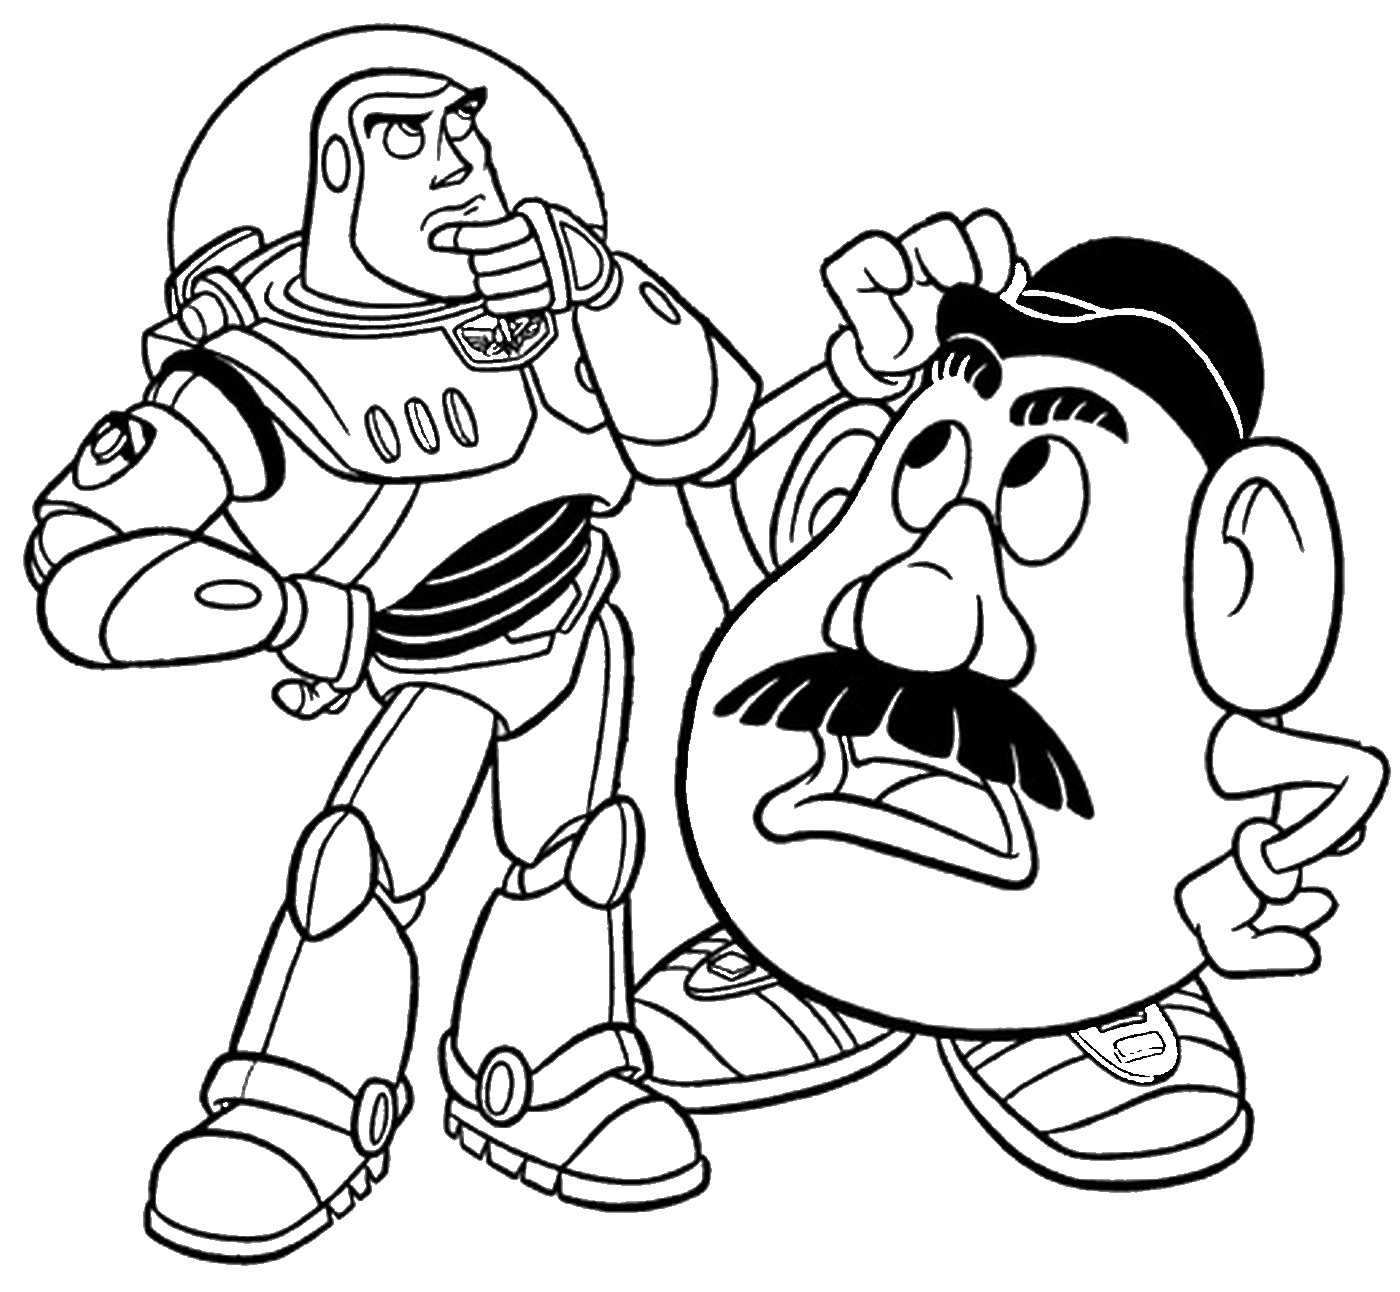 toy story 2 pictures to colour toy story coloring pages story to pictures colour 2 toy